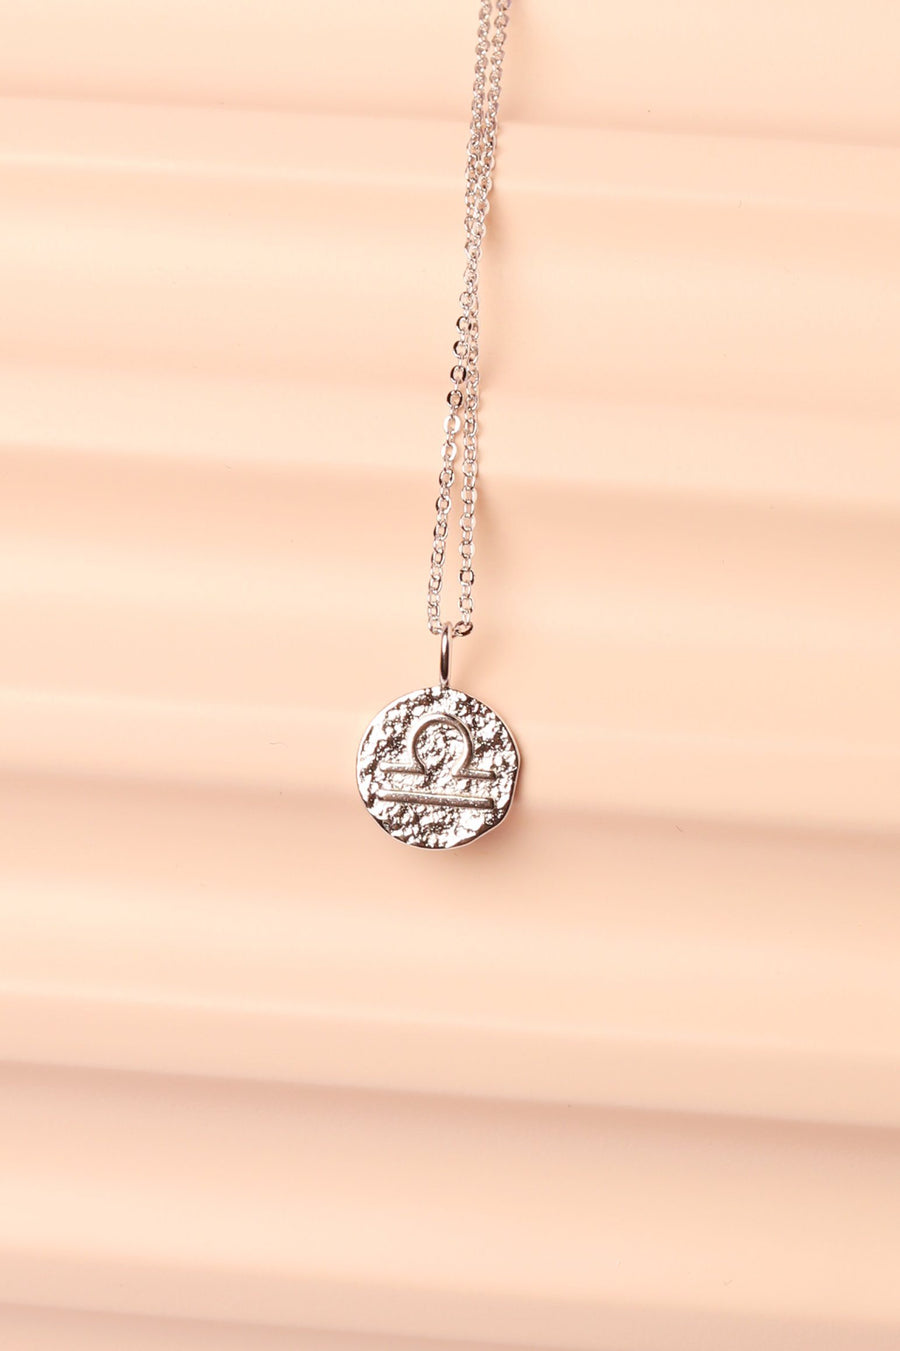 Silver Zodiac Charm Necklace Necklace Mulberry & Grand Libra